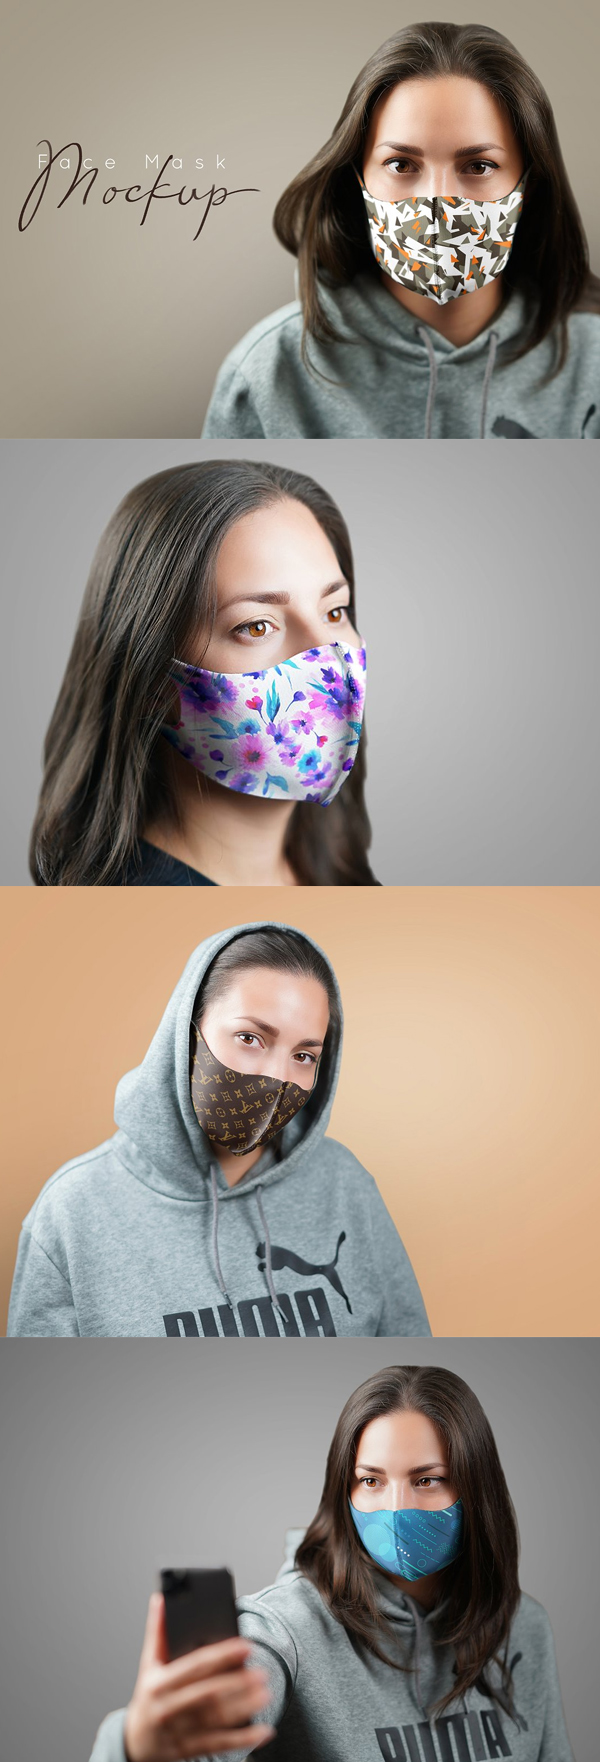 Best Creative Face Mask Mockup